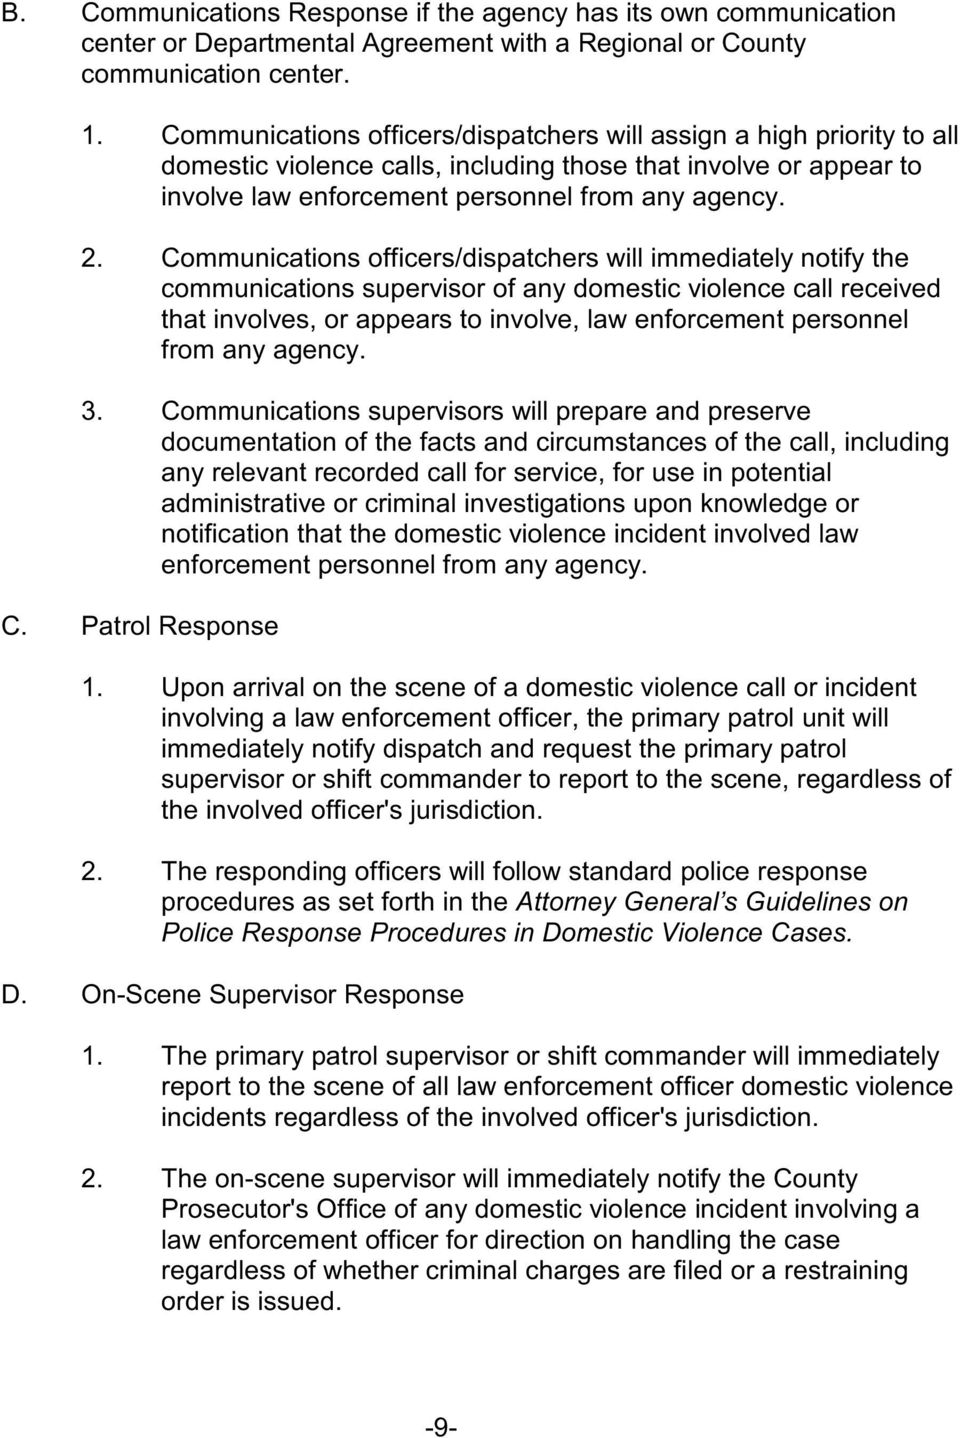 Communications officers/dispatchers will immediately notify the communications supervisor of any domestic violence call received that involves, or appears to involve, law enforcement personnel from